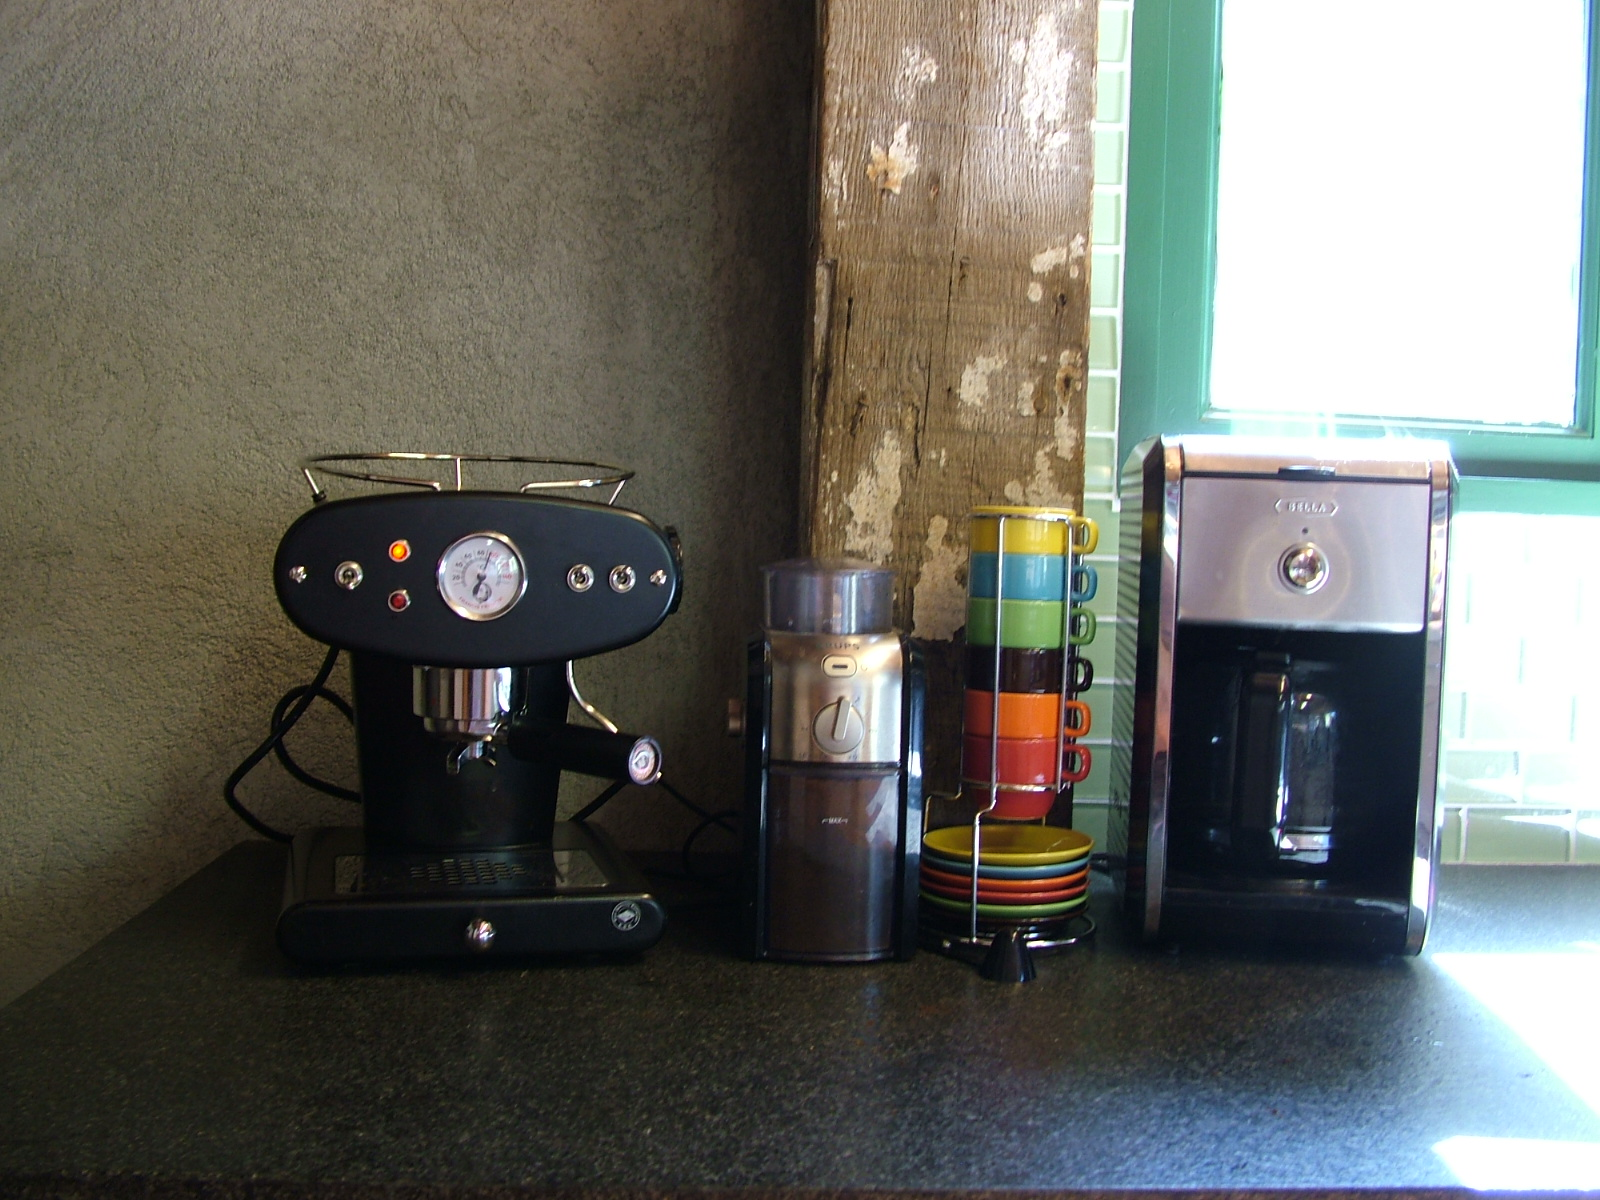 Gourmet coffee and espresso in the morning.